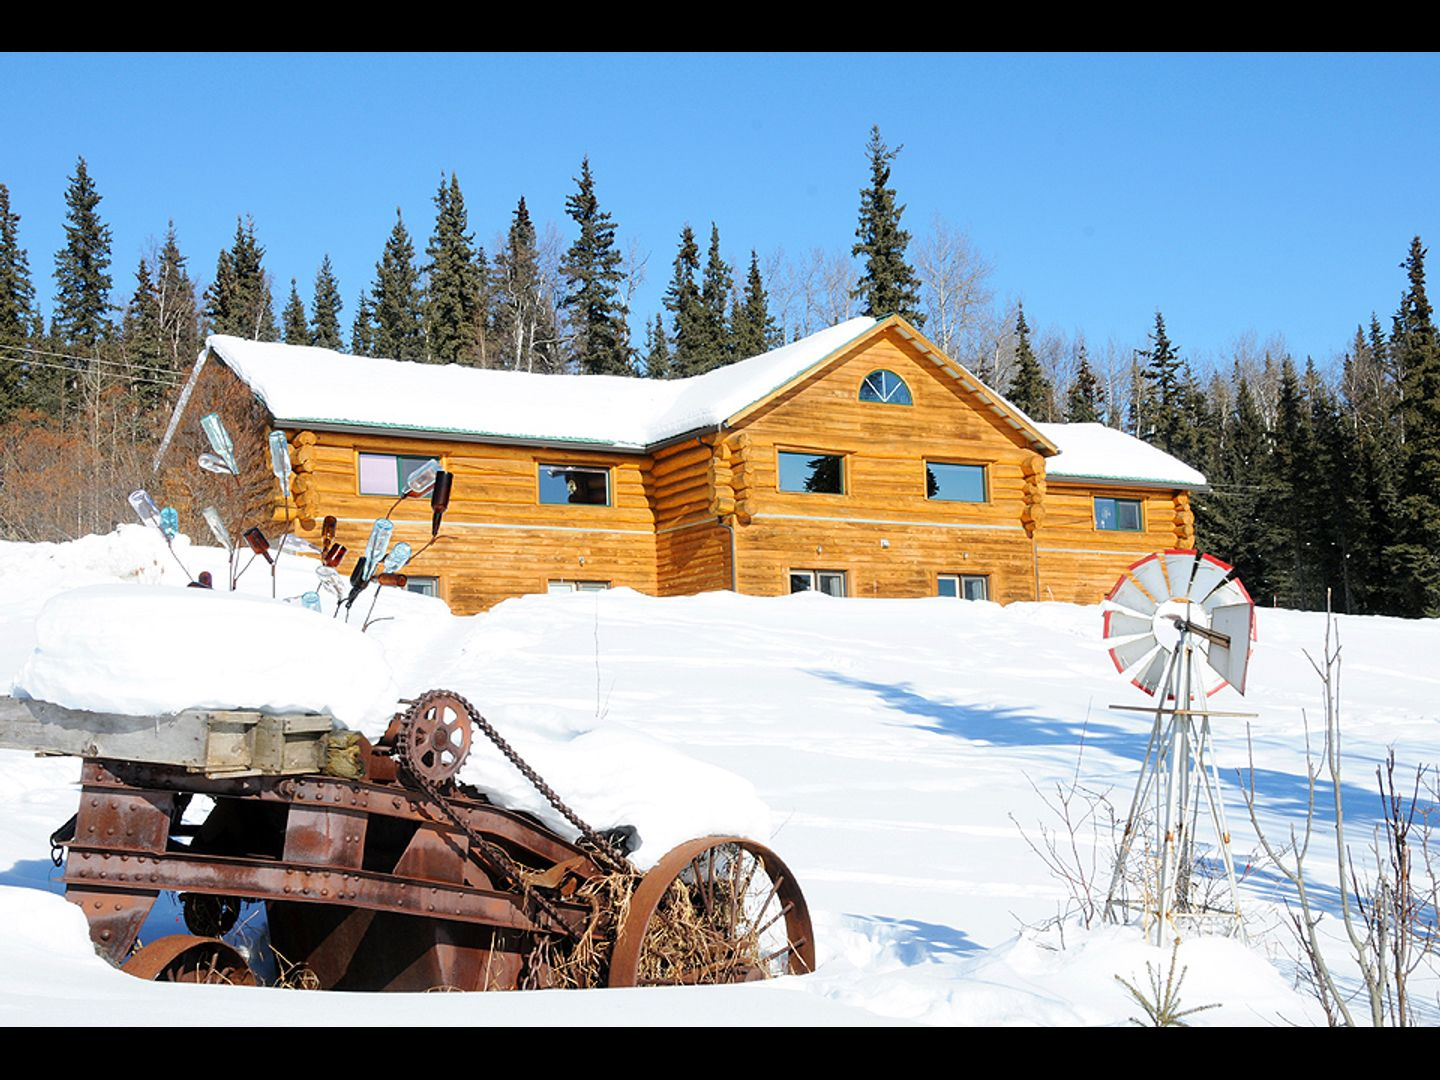 A house in the snow at A Taste of Alaska Lodge.